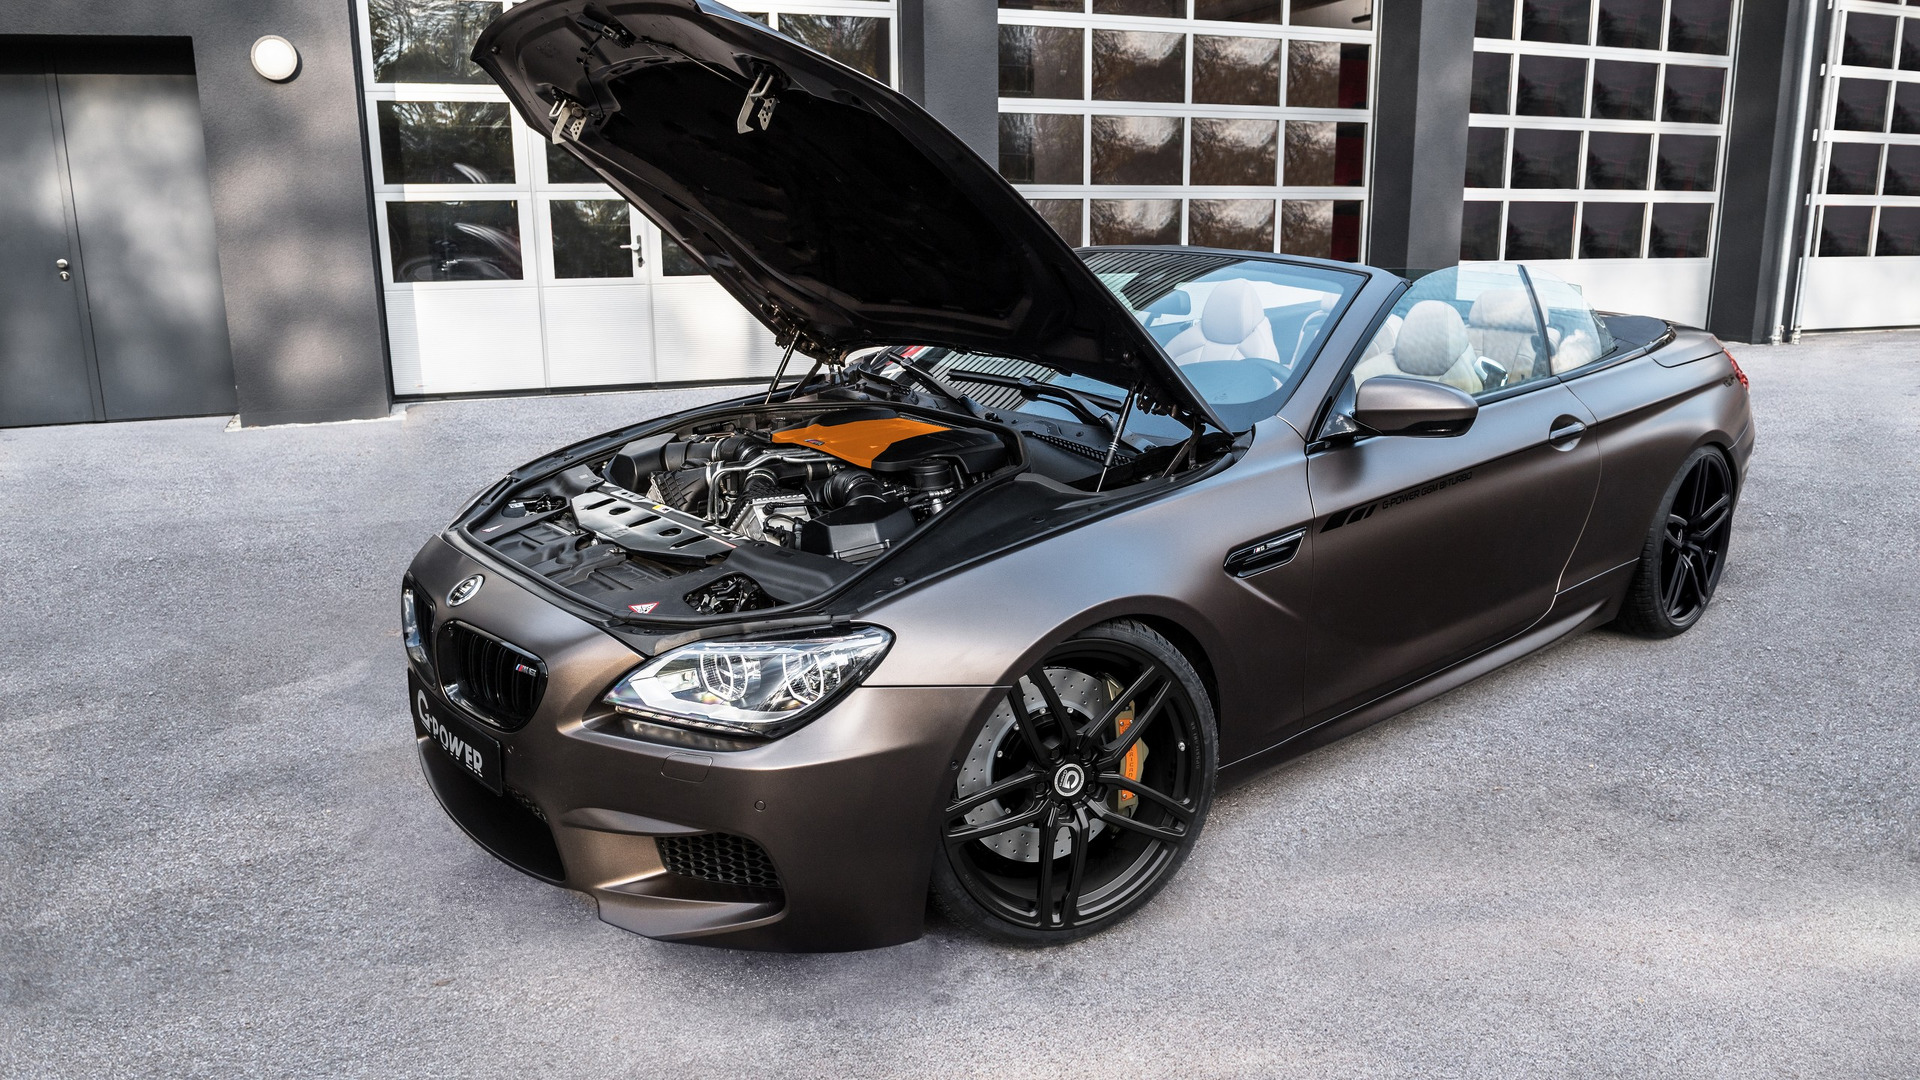 overkill g power gives 800 horsepower to bmw m6 convertible. Black Bedroom Furniture Sets. Home Design Ideas